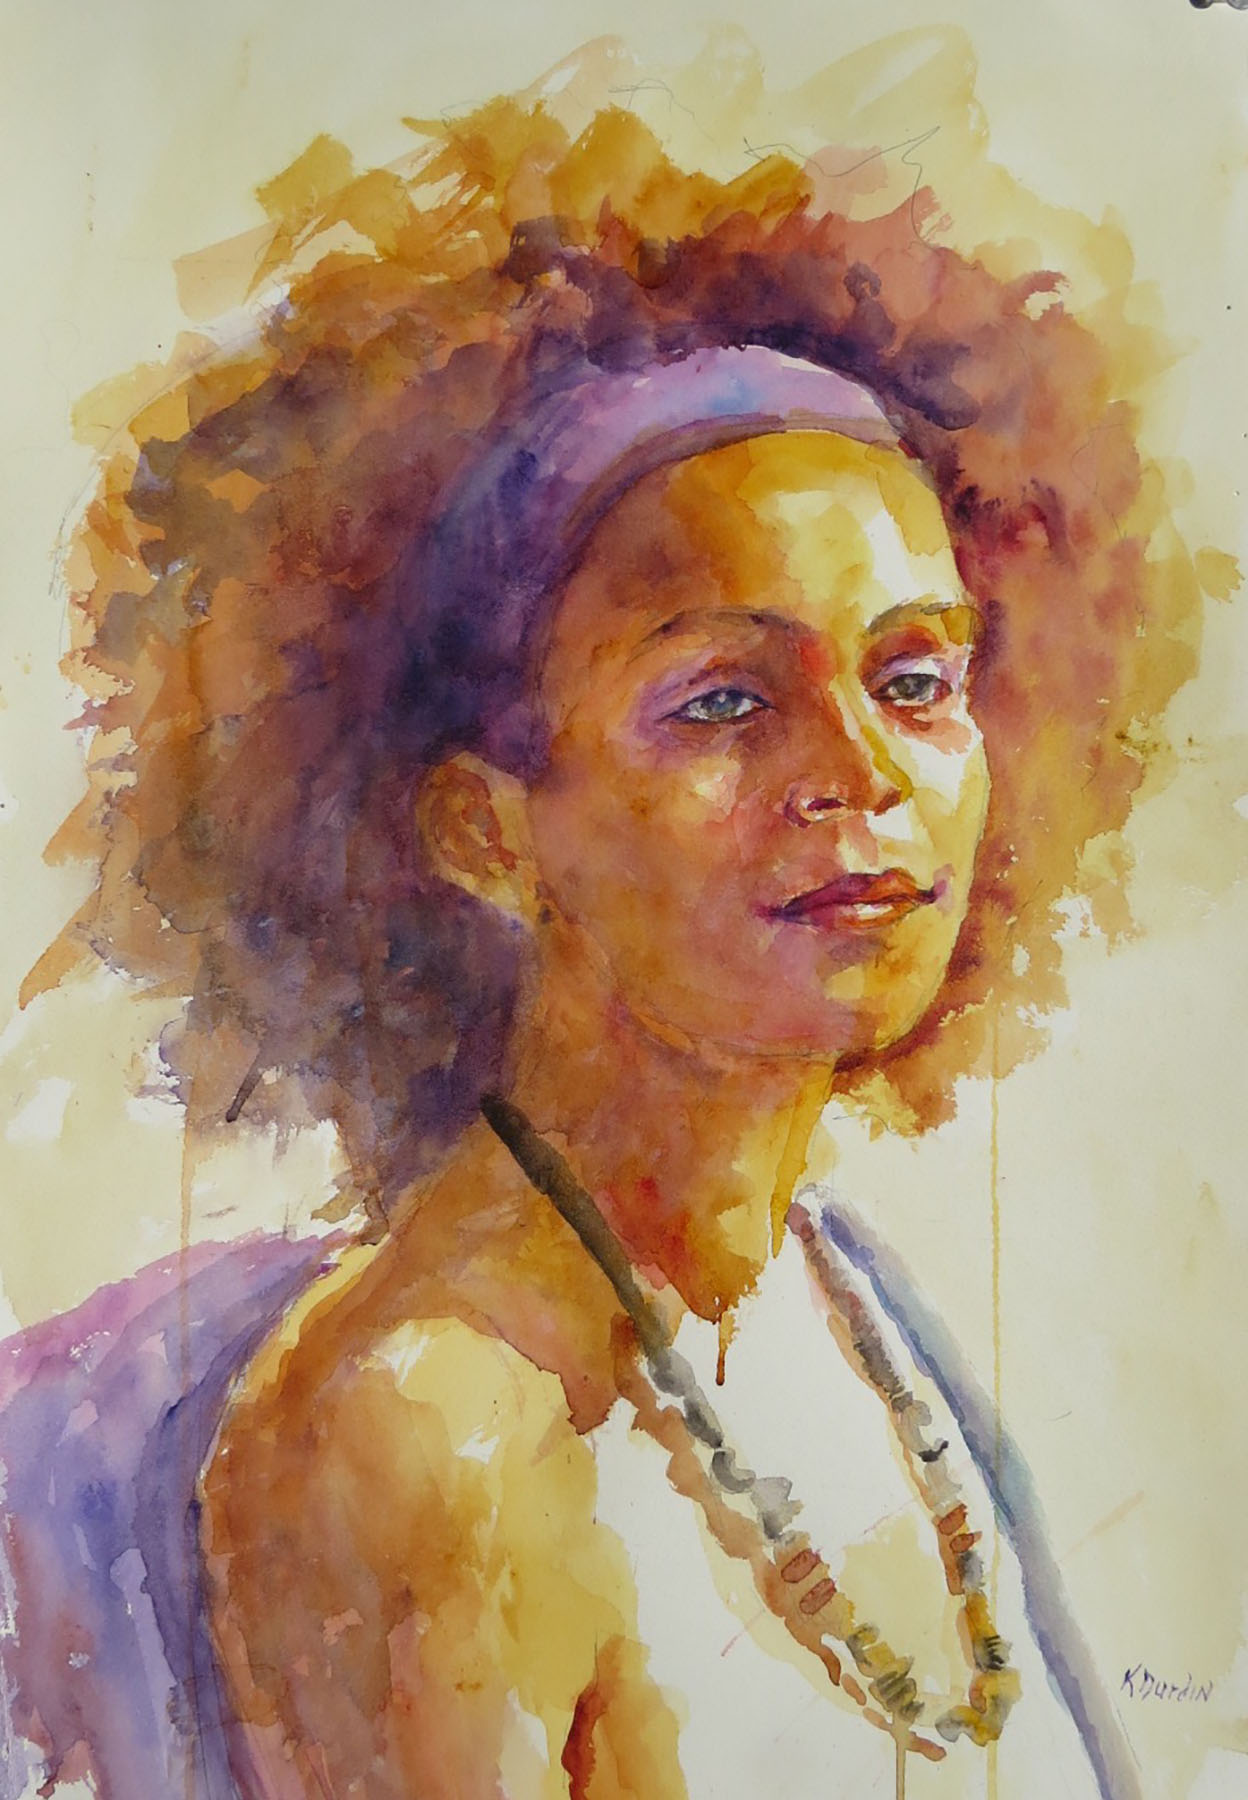 Watercolor art society houston tx - The Tallahassee Watercolor Society S 28th Tri State Juried Water Media Exhibition Presented By Museum Of Fine Arts At Fsu Tallahassee Watercolor Society